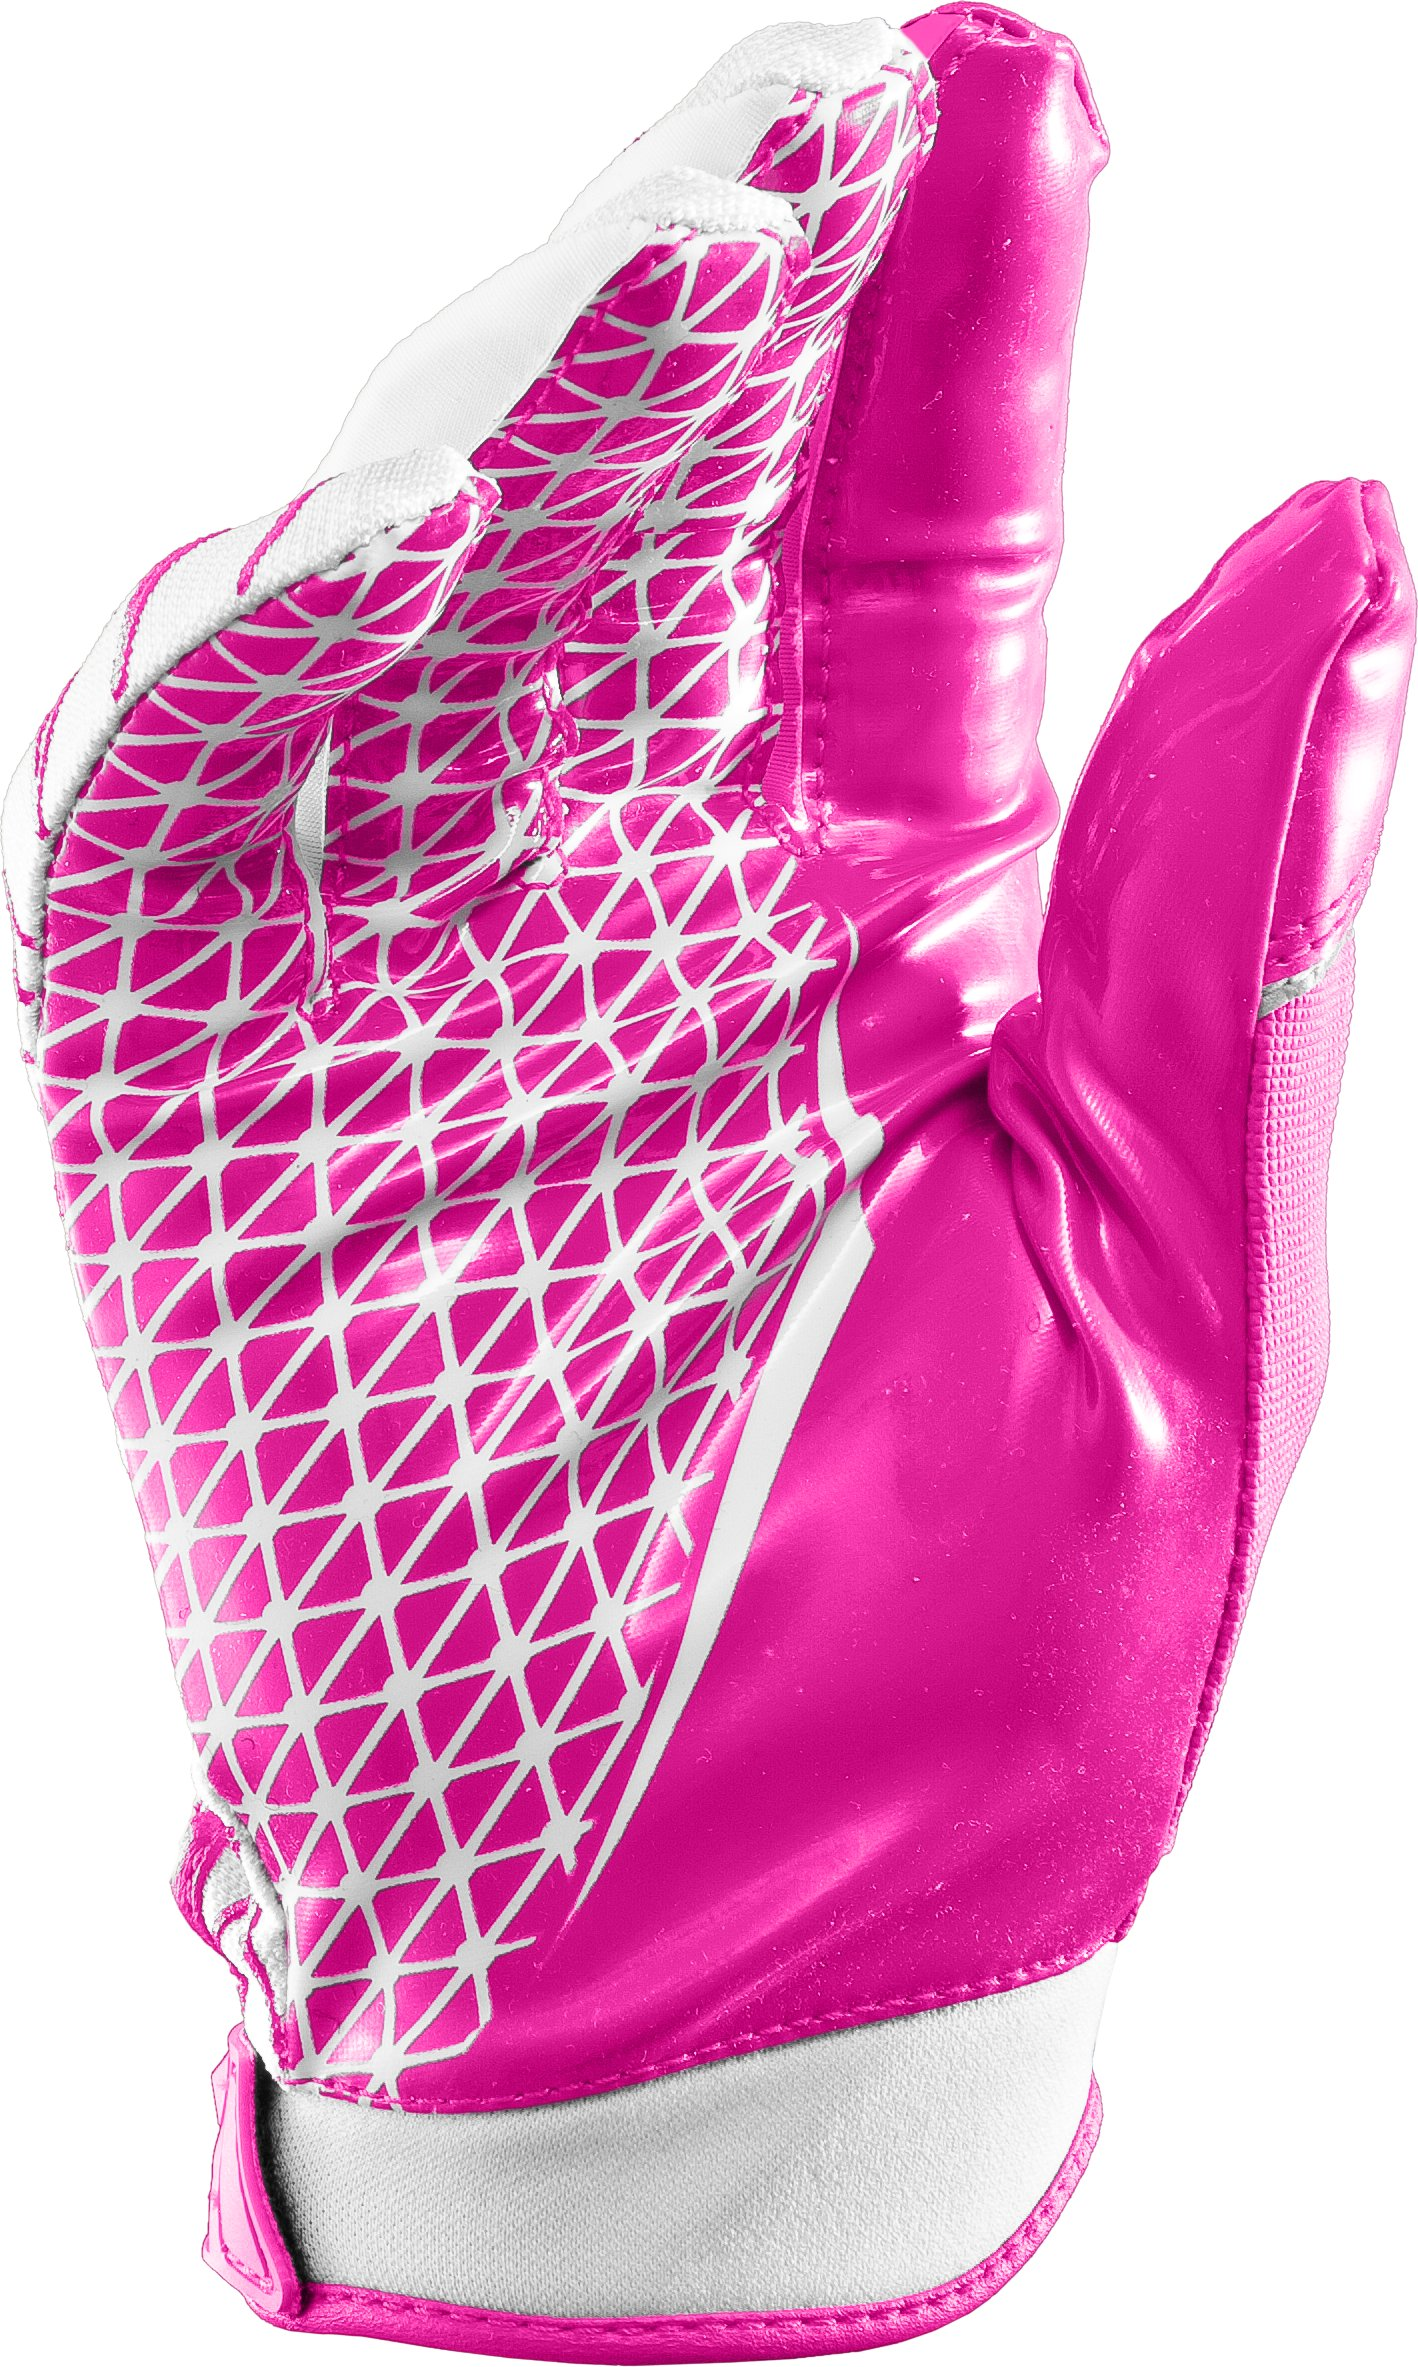 Men's UA Warp Speed Football Gloves, Tropic Pink,